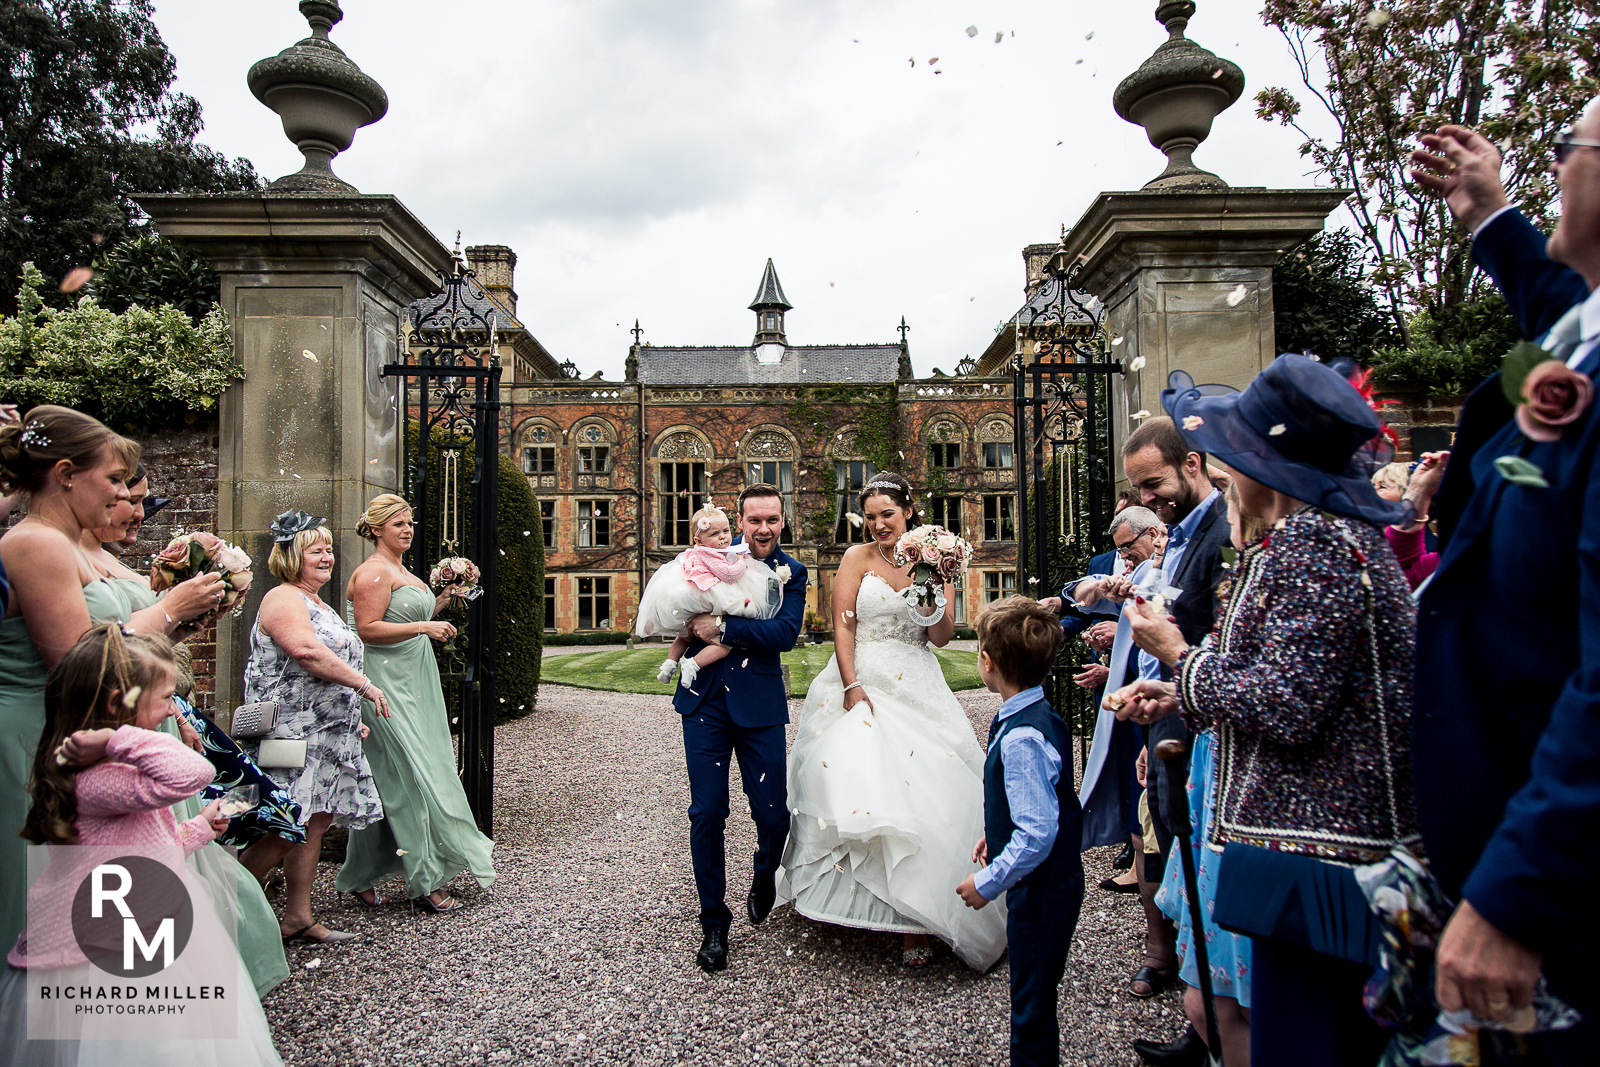 P R 29 - Pete & Roxy's Soughton Hall Outdoor Wedding